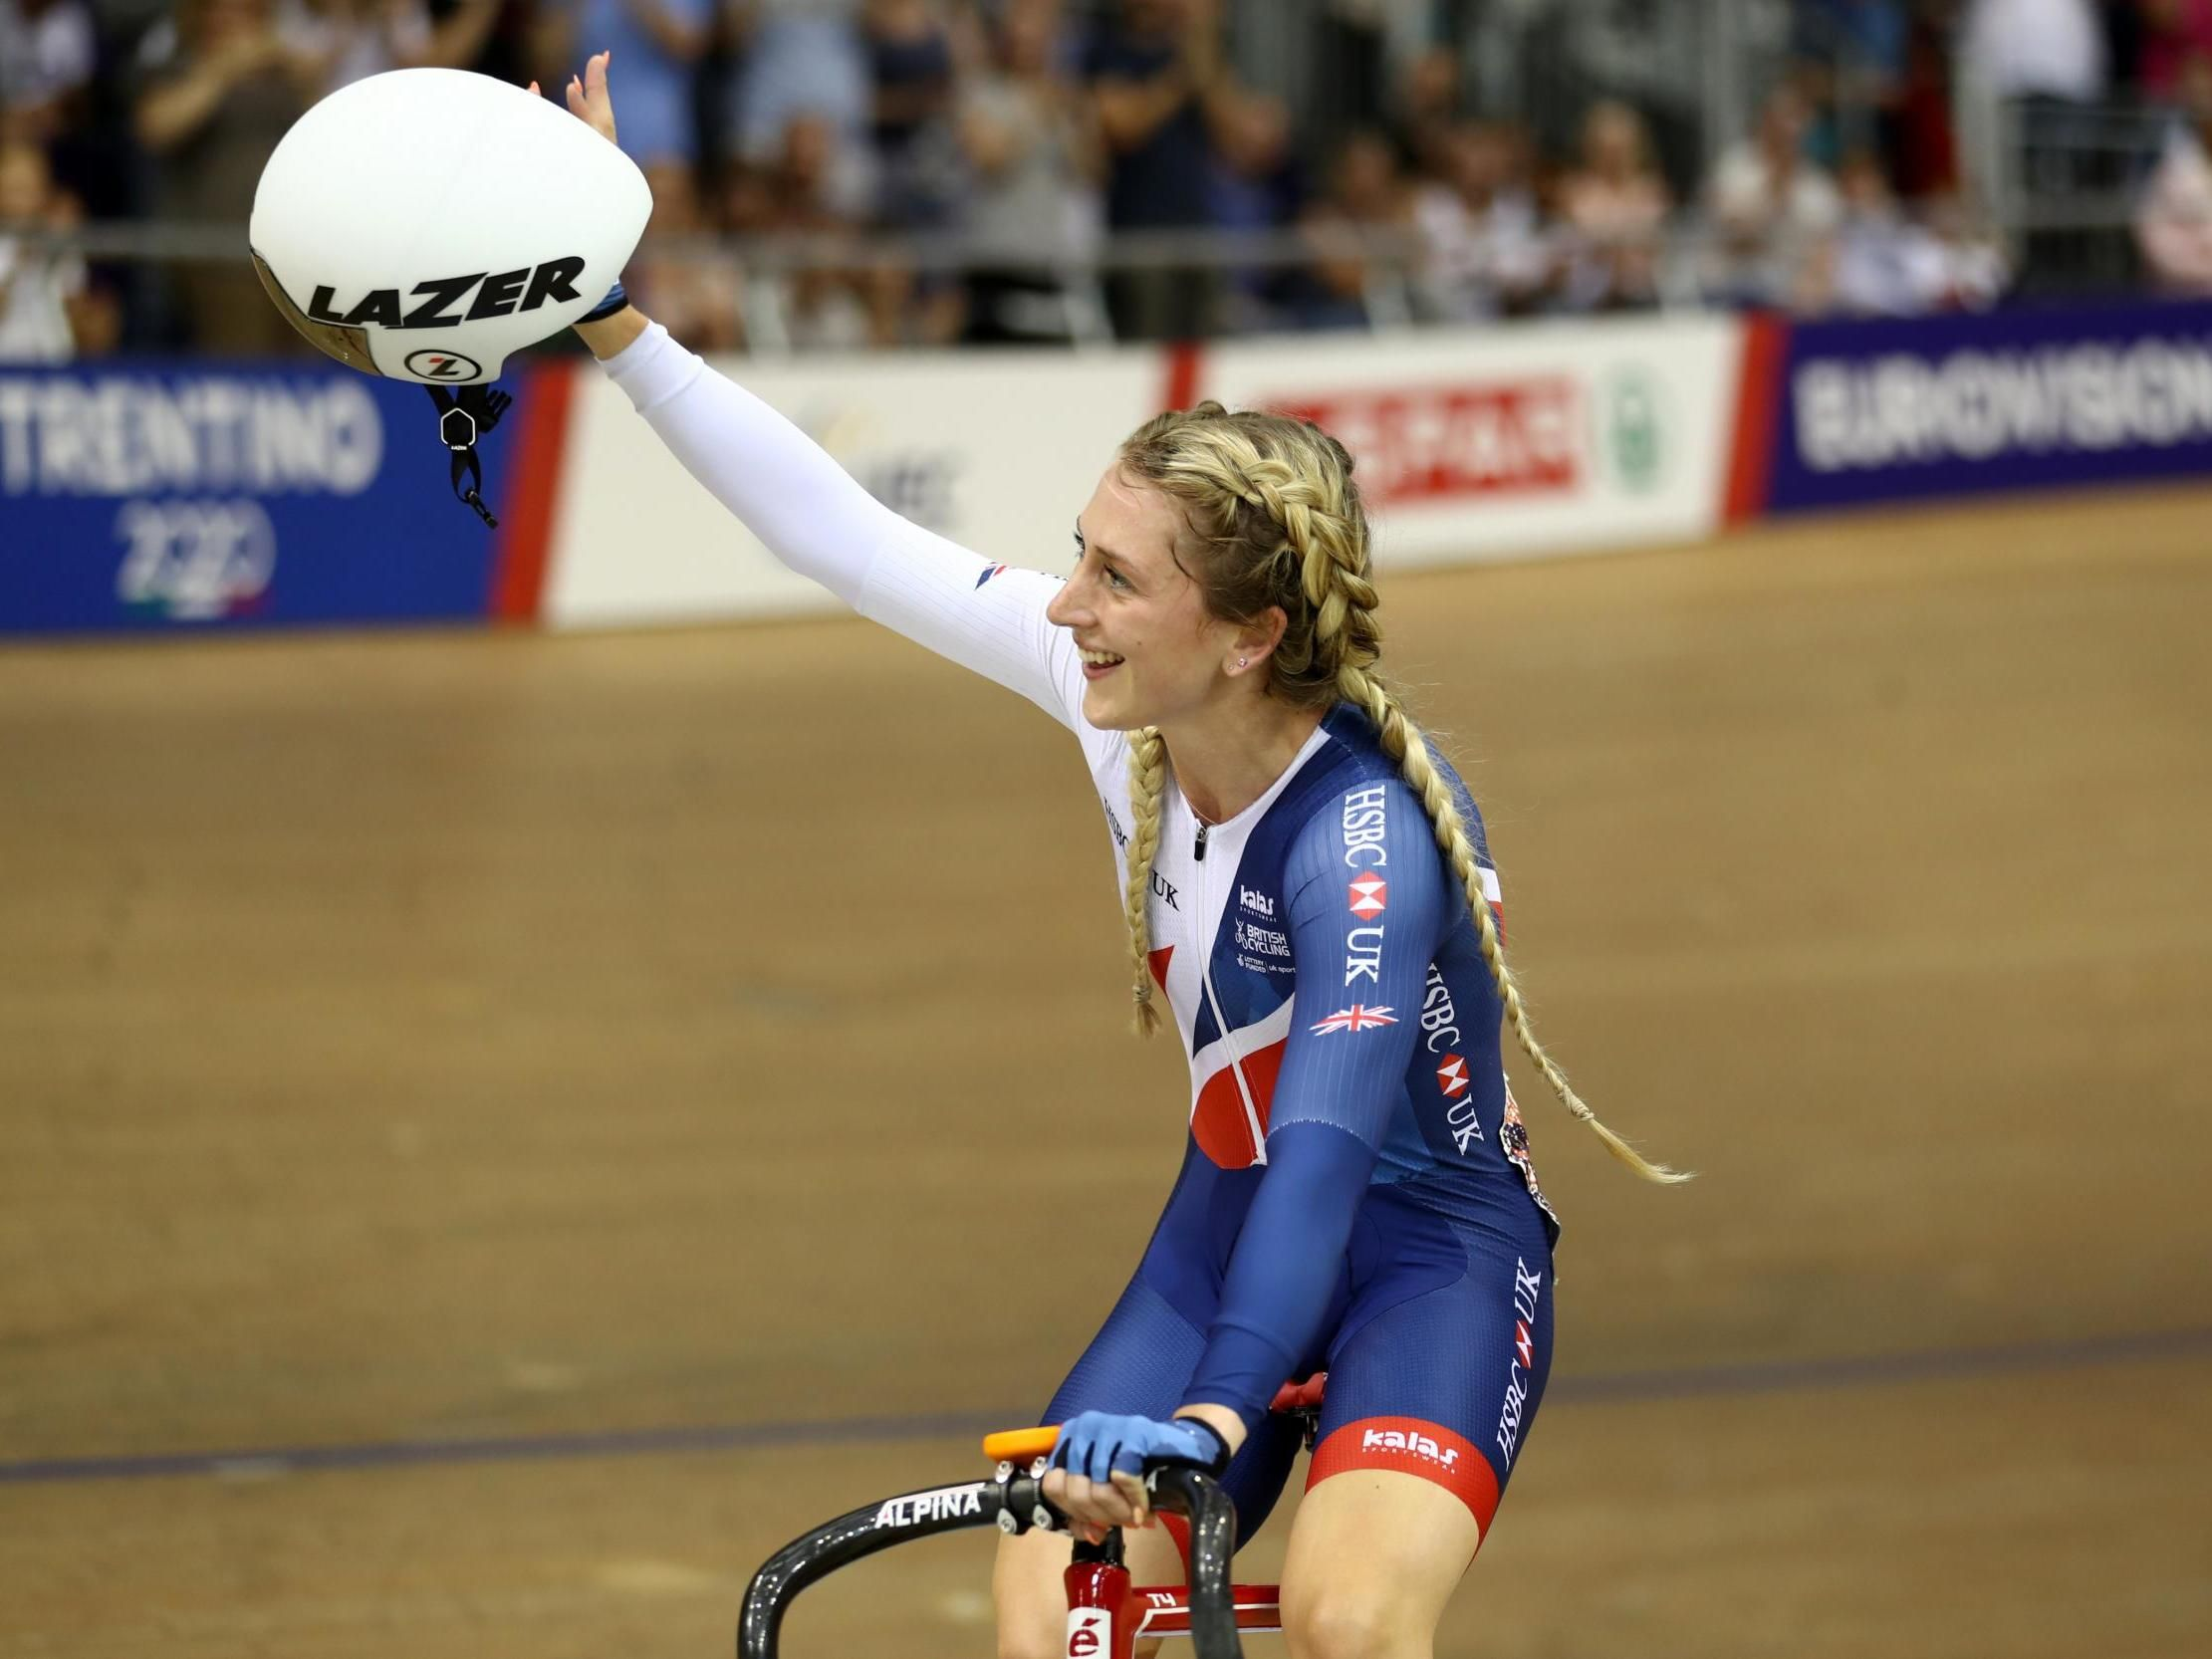 Laura Trott Great Britain Olympic women's cycling member